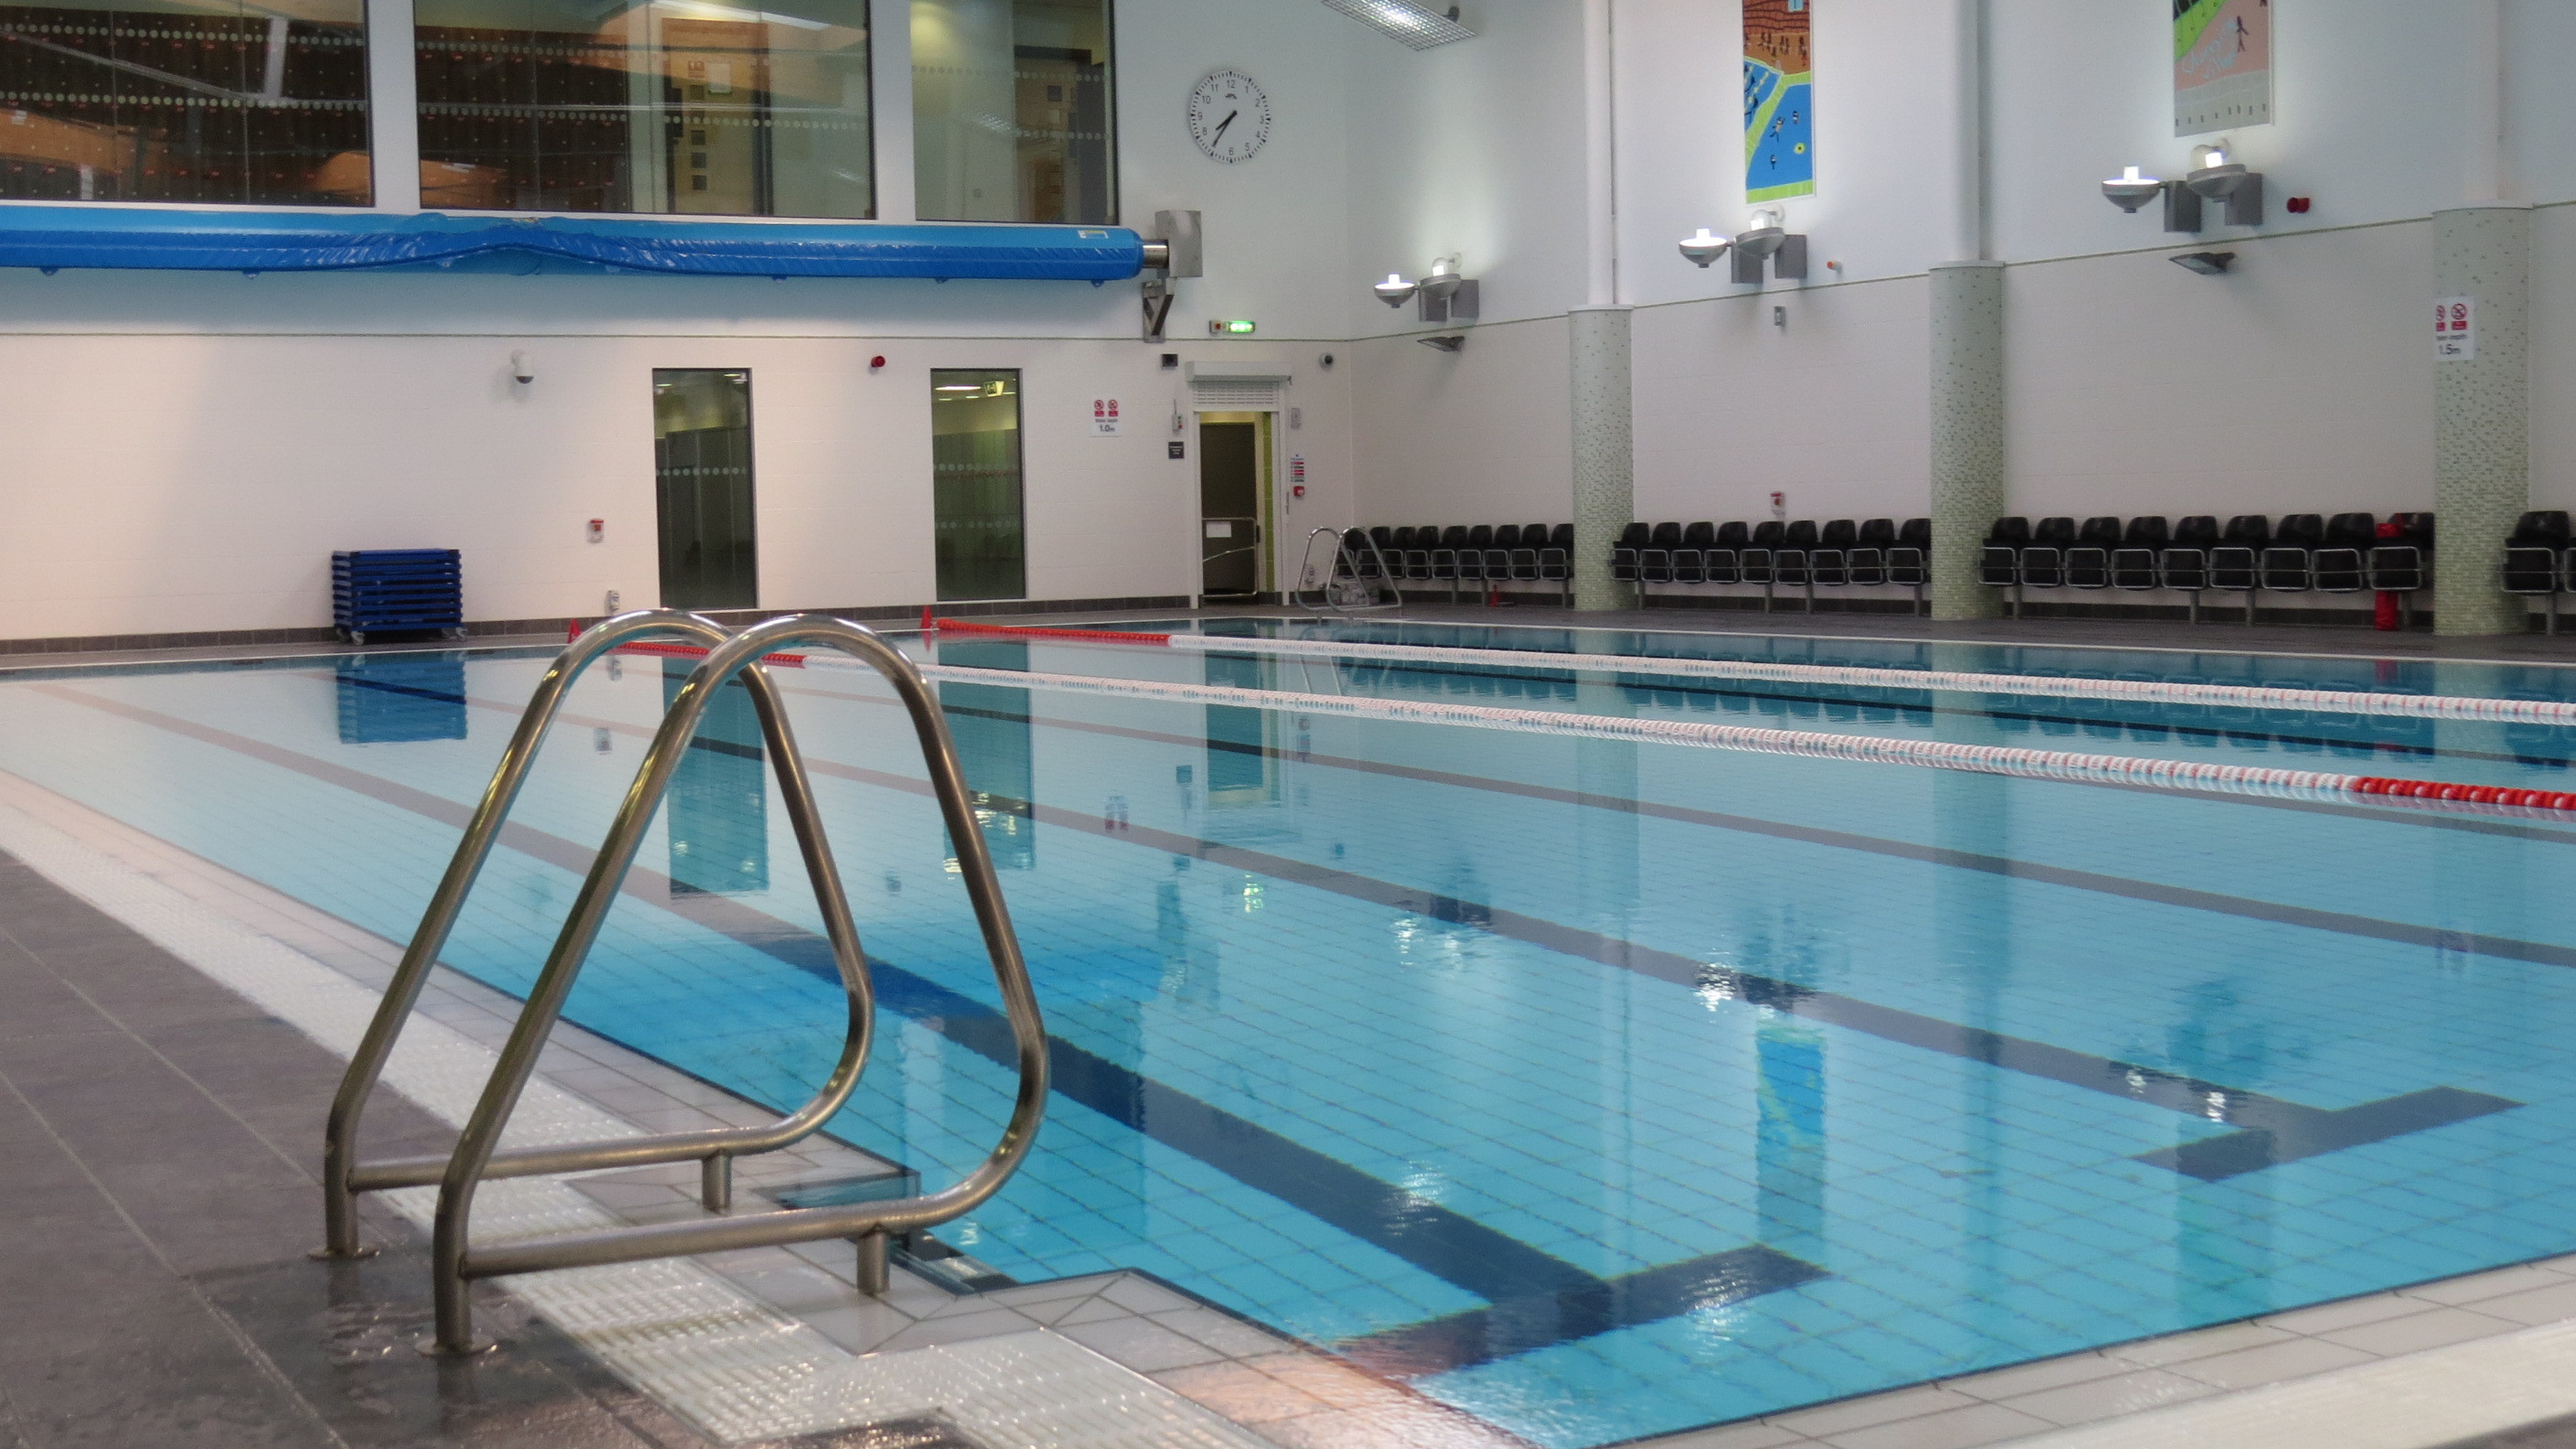 Harborne pool and fitness centre birmingham for Swimming pool photos